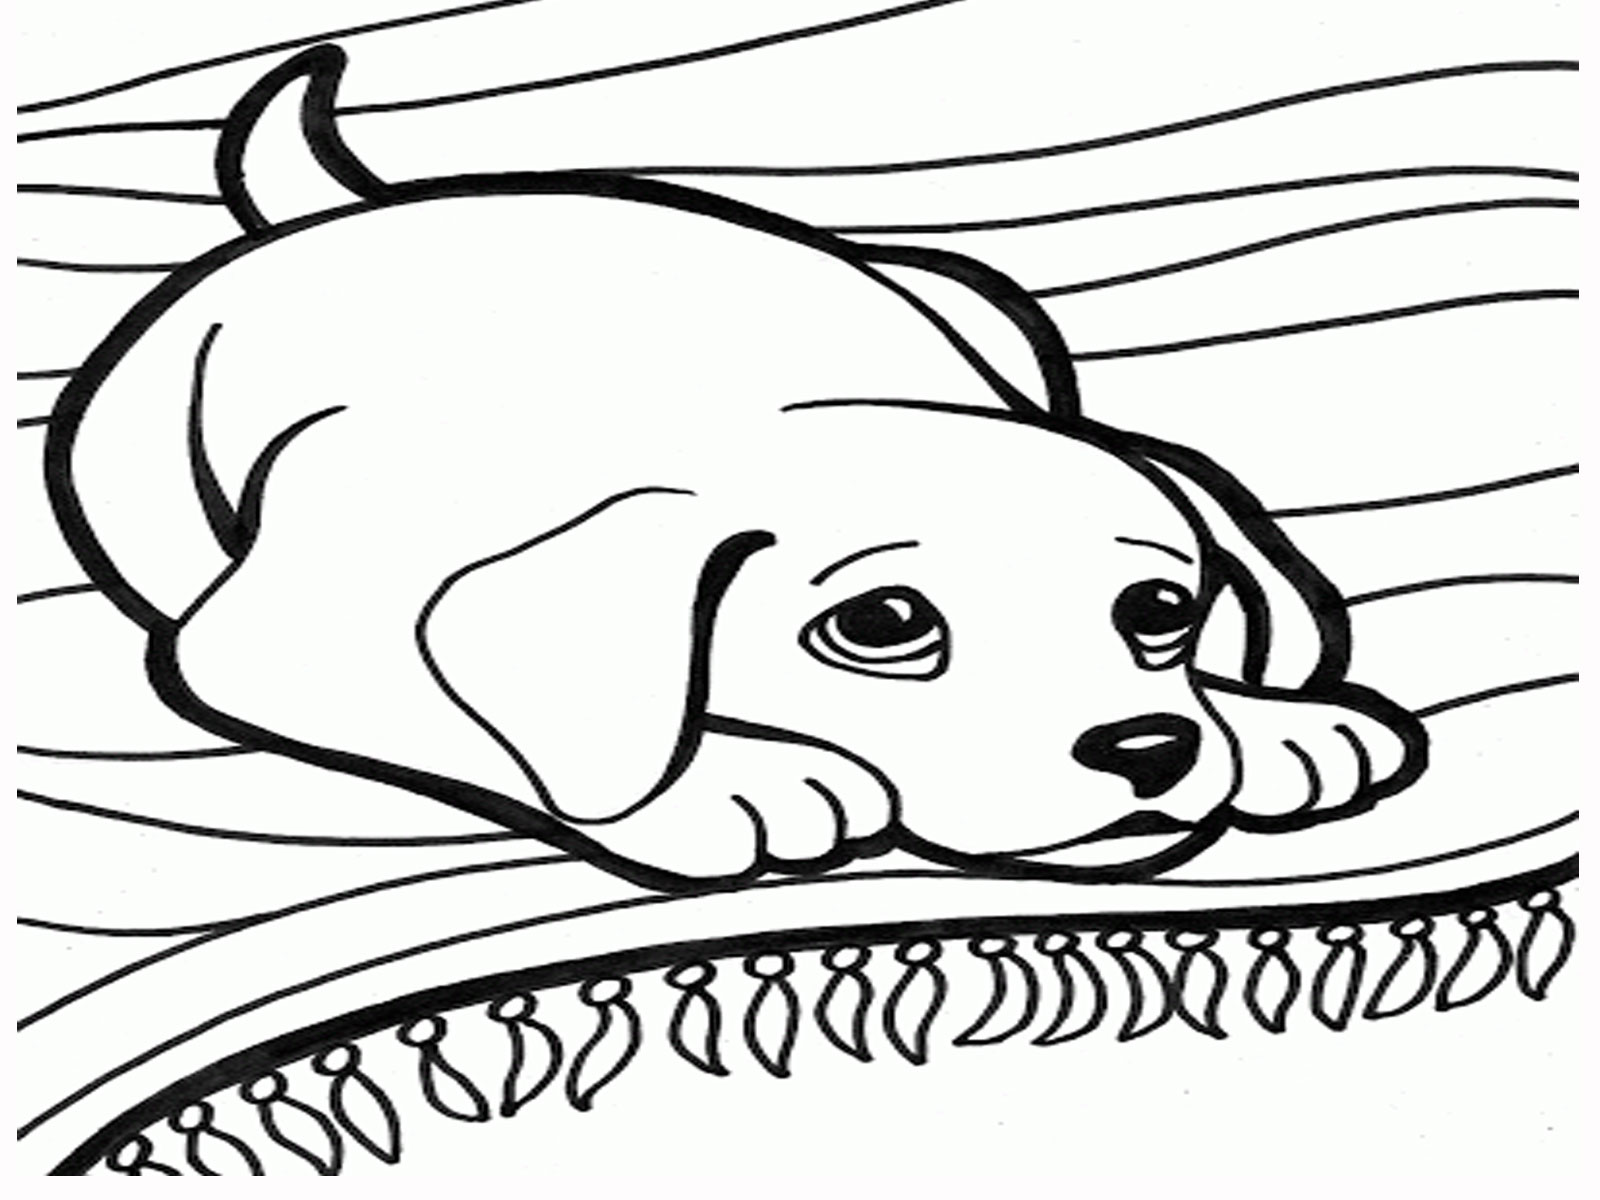 1600x1200 Small Dog Coloring Pages Kids Coloring